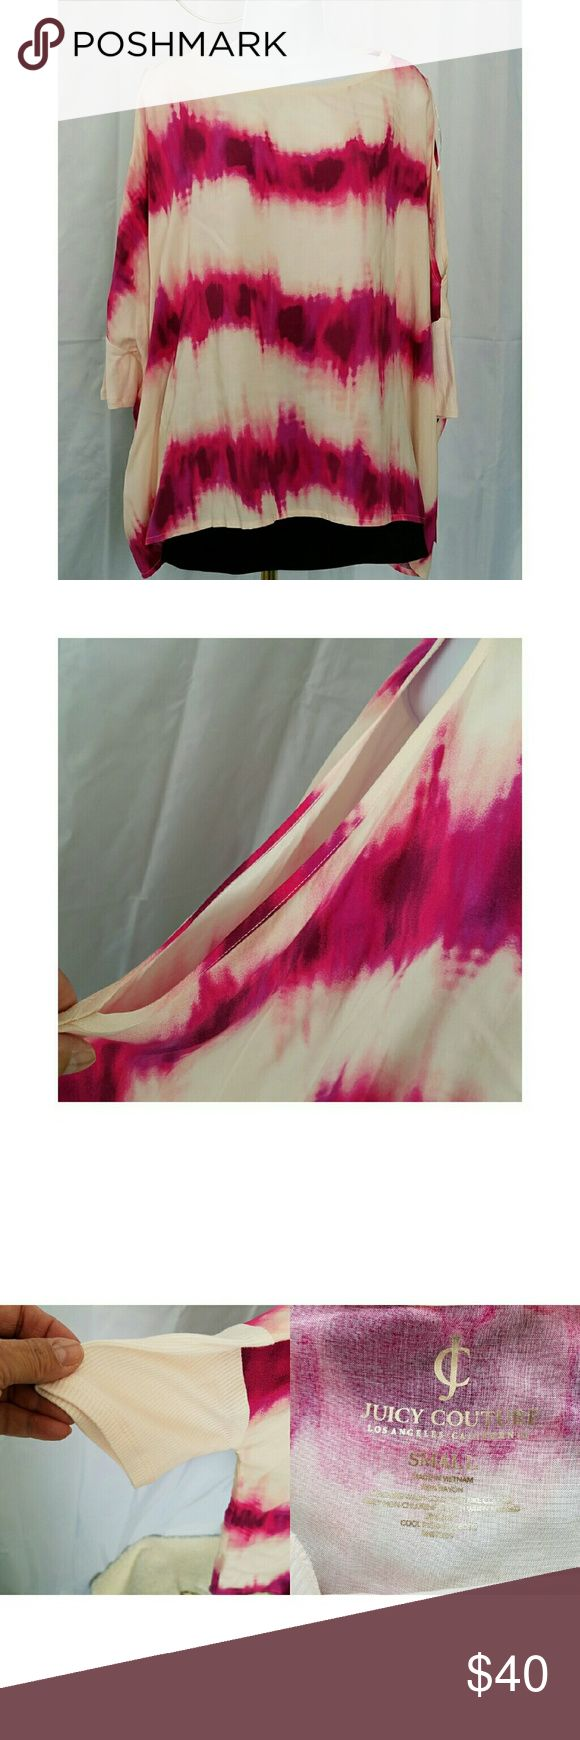 """JUICY COUTURE BATWING TIE DYE TOP NWT S JUICY COUTURE BATWING TIE DYE TOP in pinks and purples on a cream background.  It has cold shoulder sleeves that end in a knitted middle arm cuff.  Armpit to armpit is 35"""" and shoulder to hem length is 25"""". 100% rayon.  All measurements are approximate and taken flat.  NWT Juicy Couture Tops Tunics"""